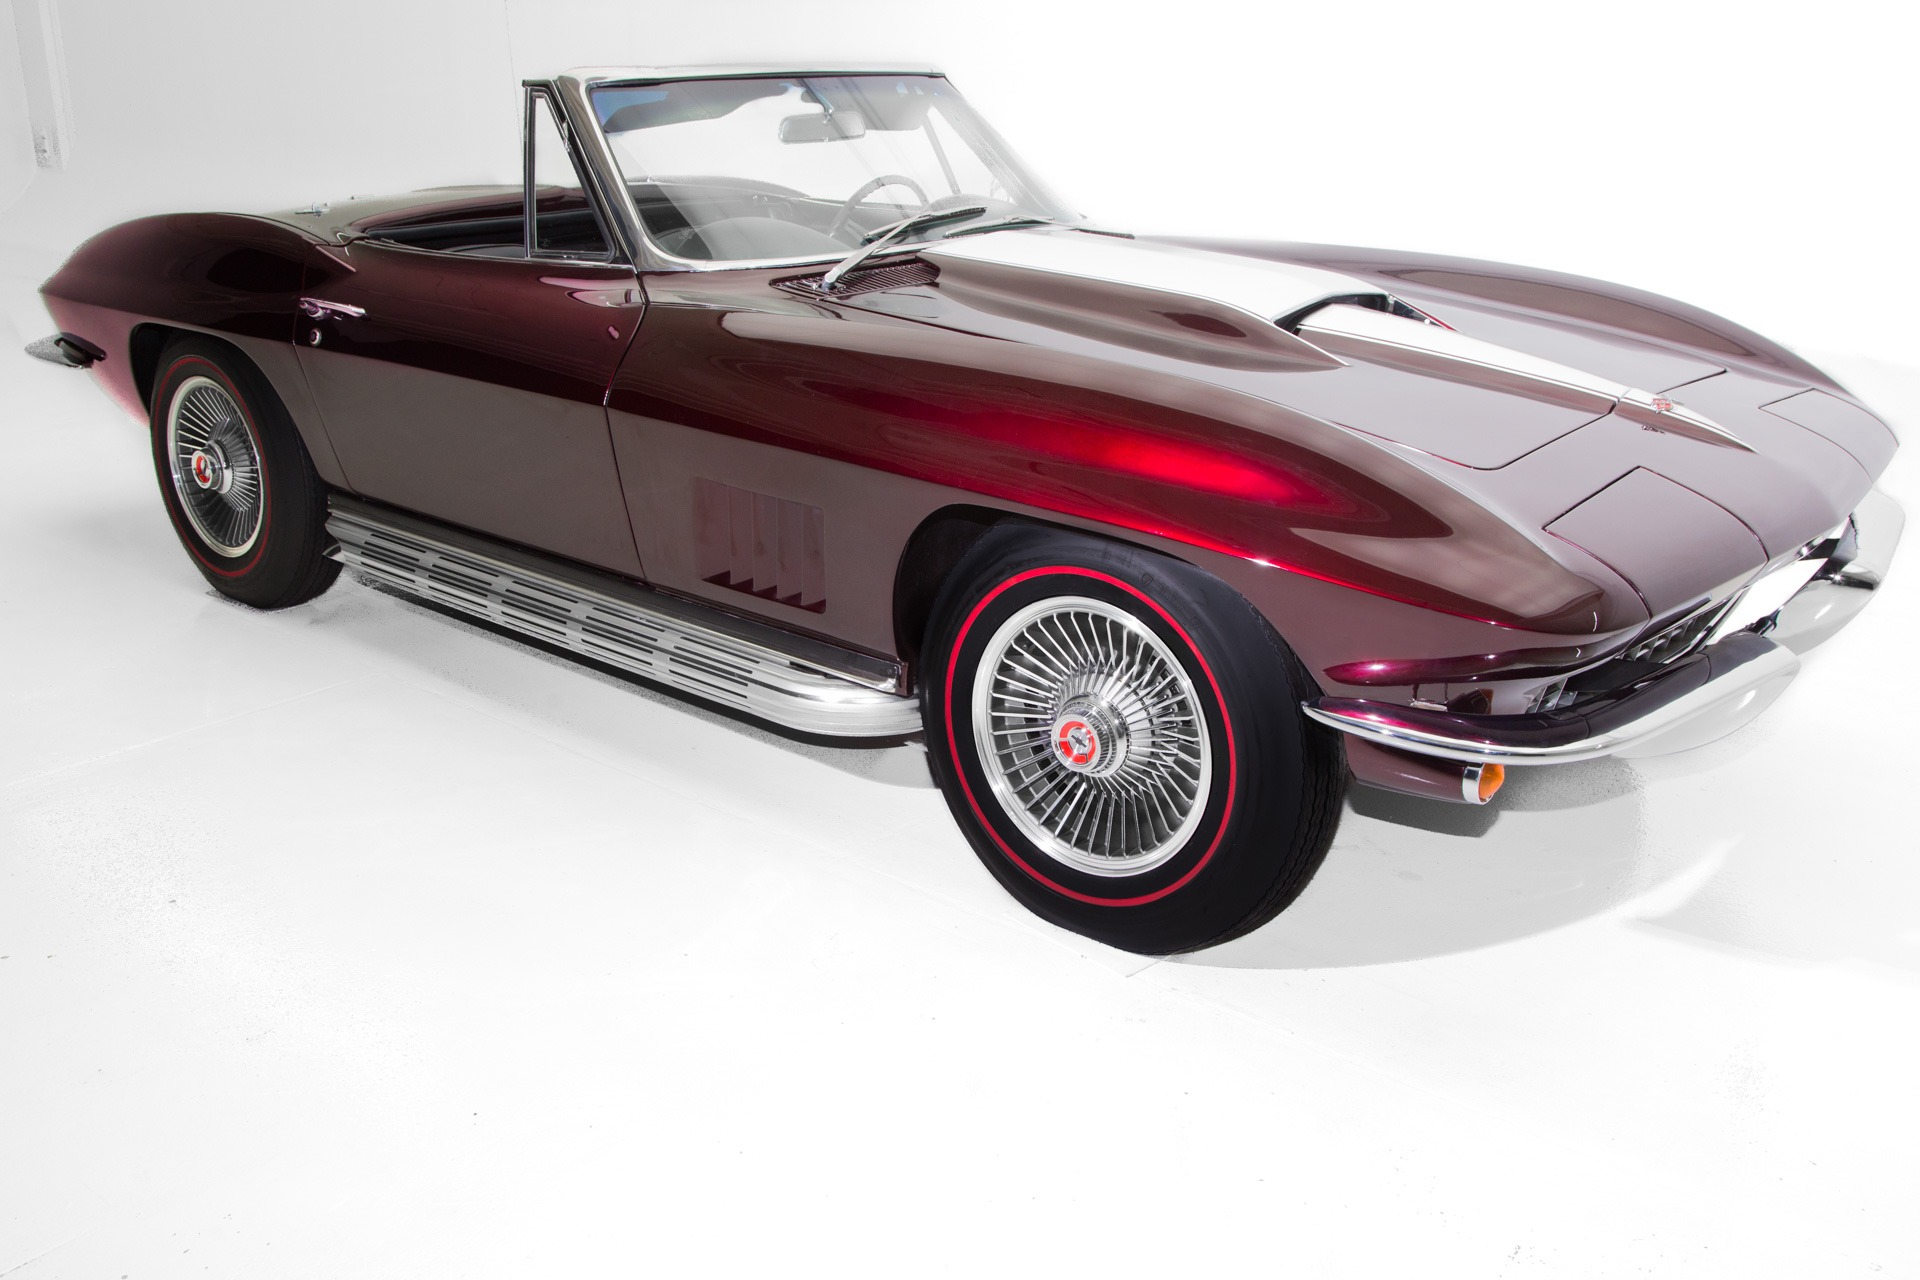 For Sale Used 1967 Chevrolet Corvette Brandywine 383 AC | American Dream Machines Des Moines IA 50309